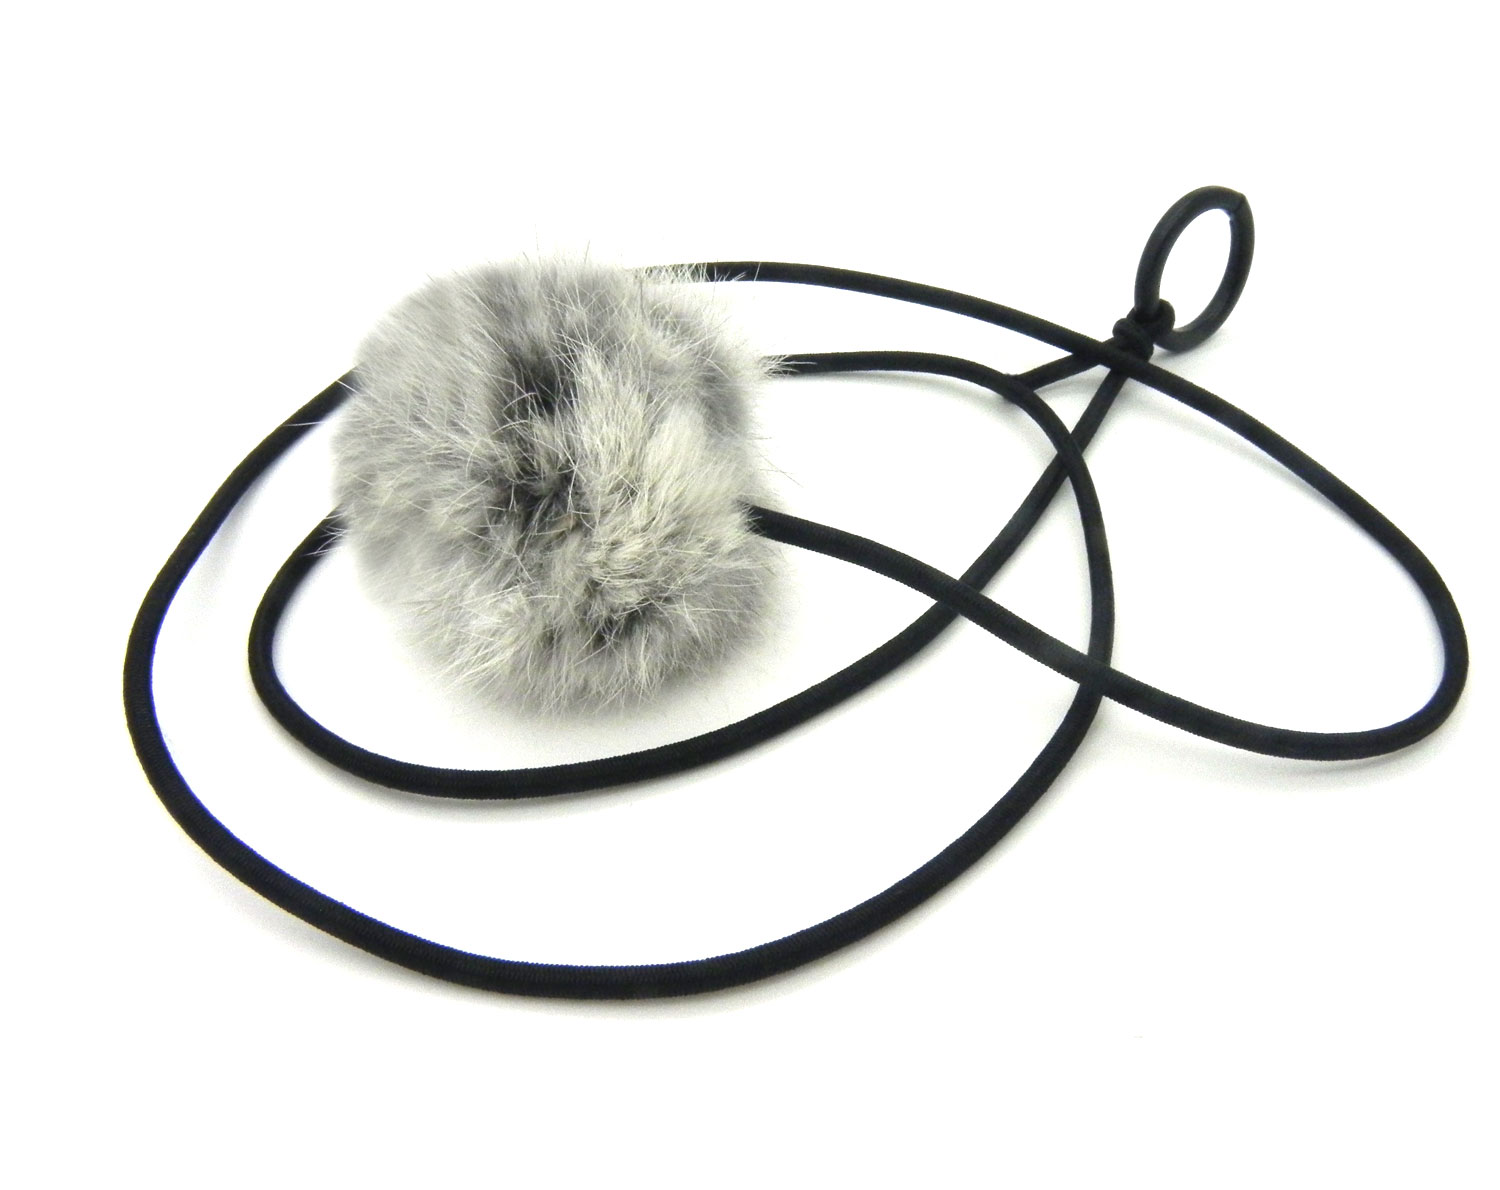 Cat Toy On String Amazon